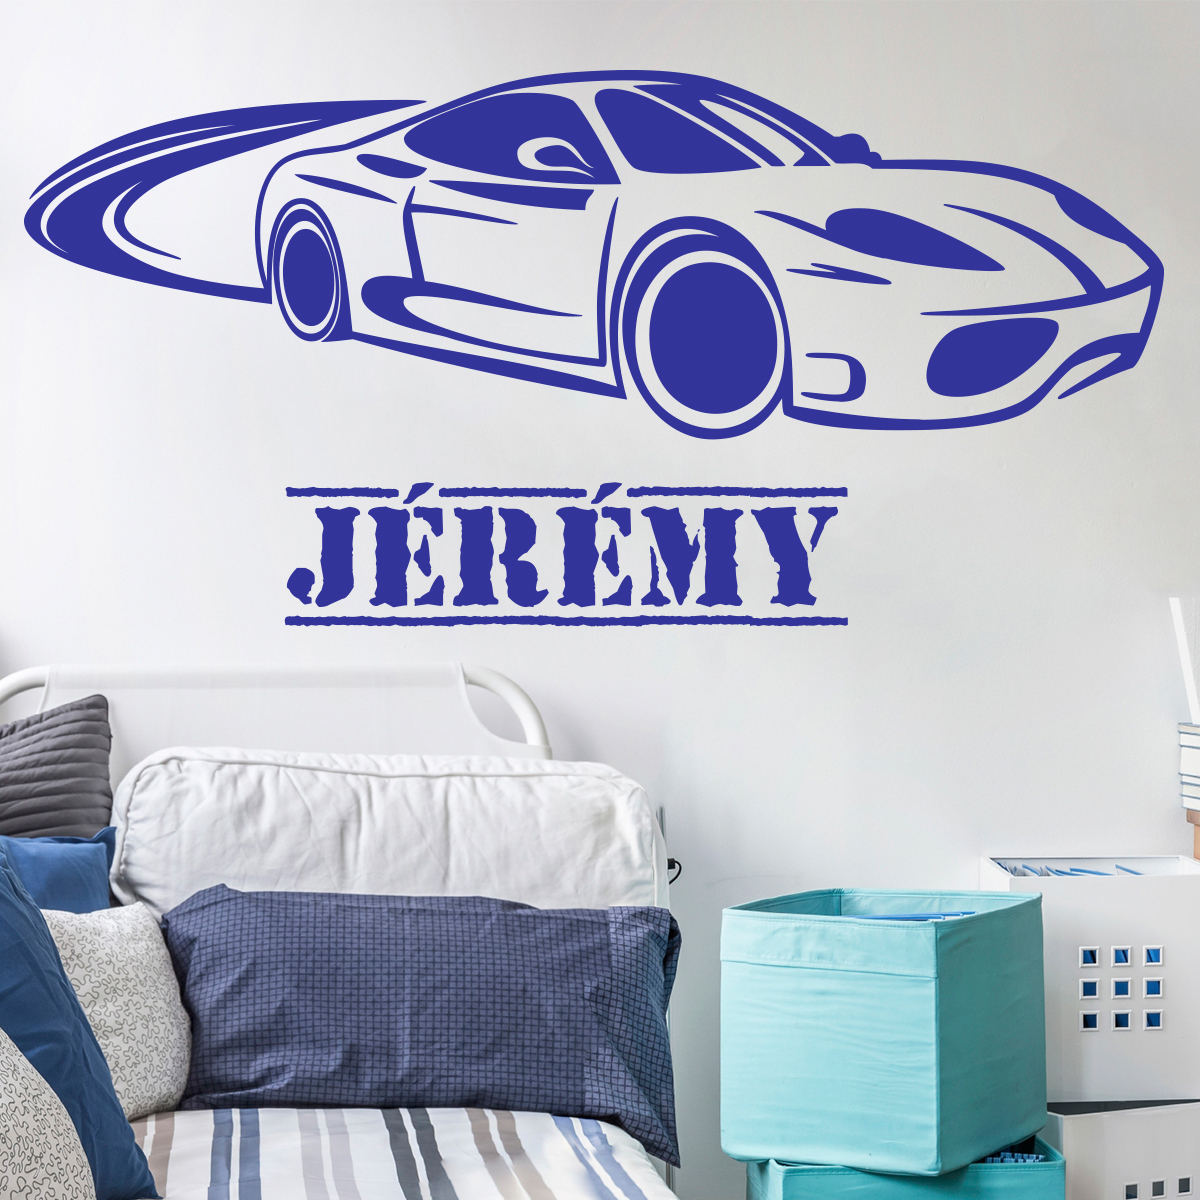 sticker pr nom personnalis voiture chambre ado gar on. Black Bedroom Furniture Sets. Home Design Ideas